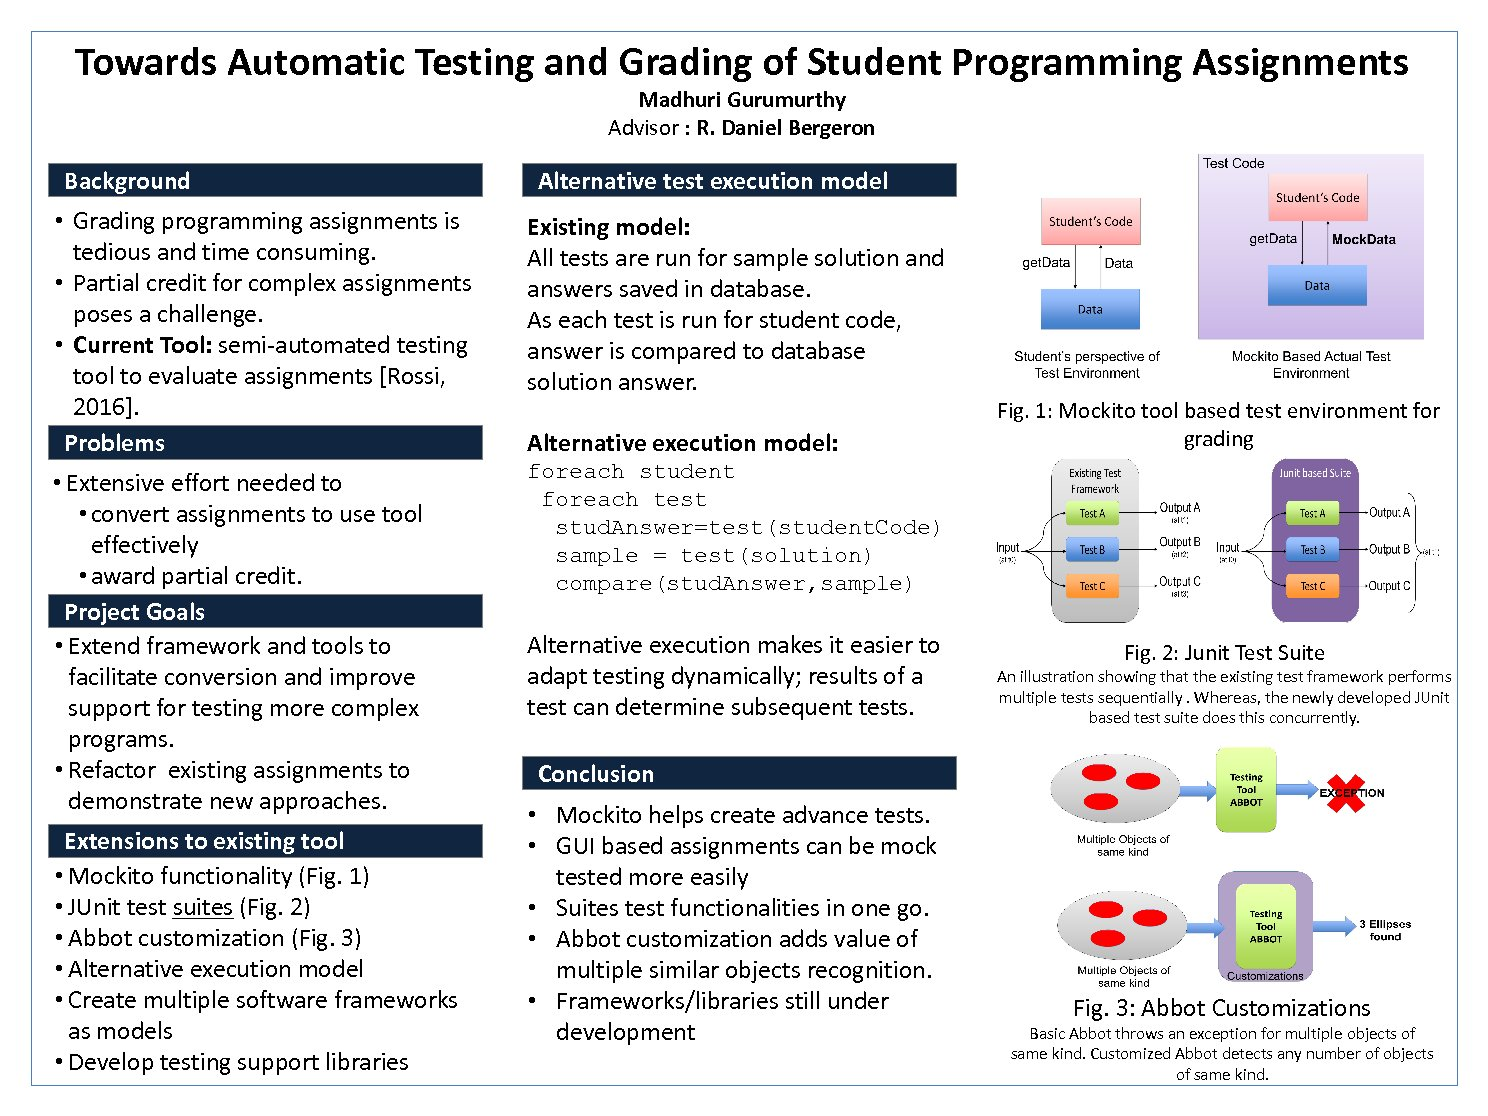 Towards Automatic Testing And Grading Of Student Programming Assignments by MadhuriGurumurthy